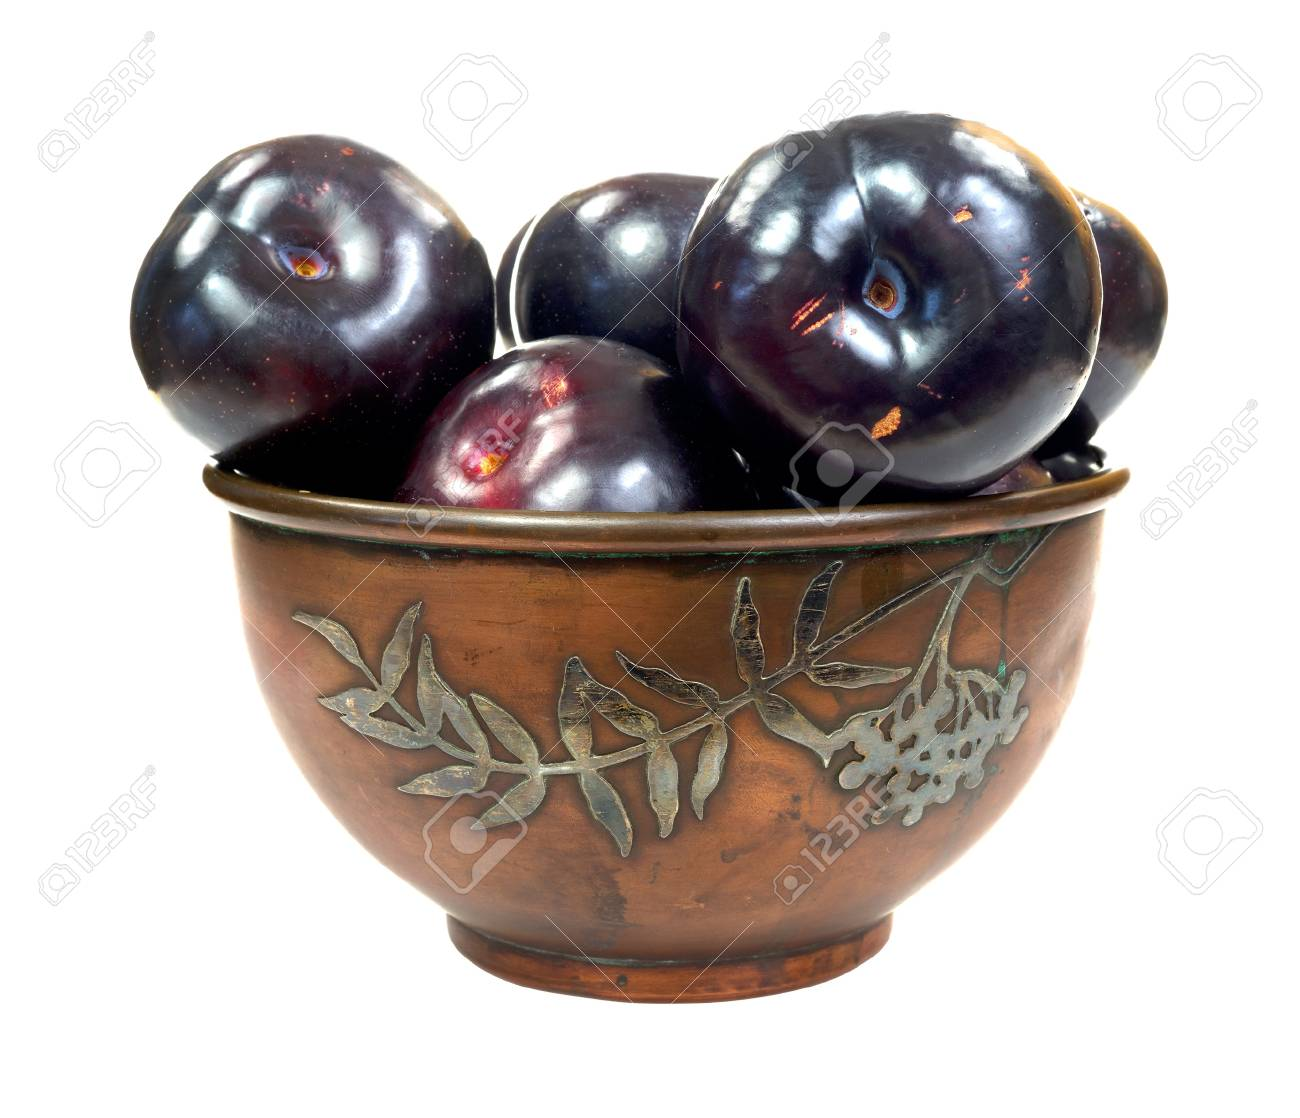 An old copper bowl filled with ripe plums on a white background Stock Photo - 14847875